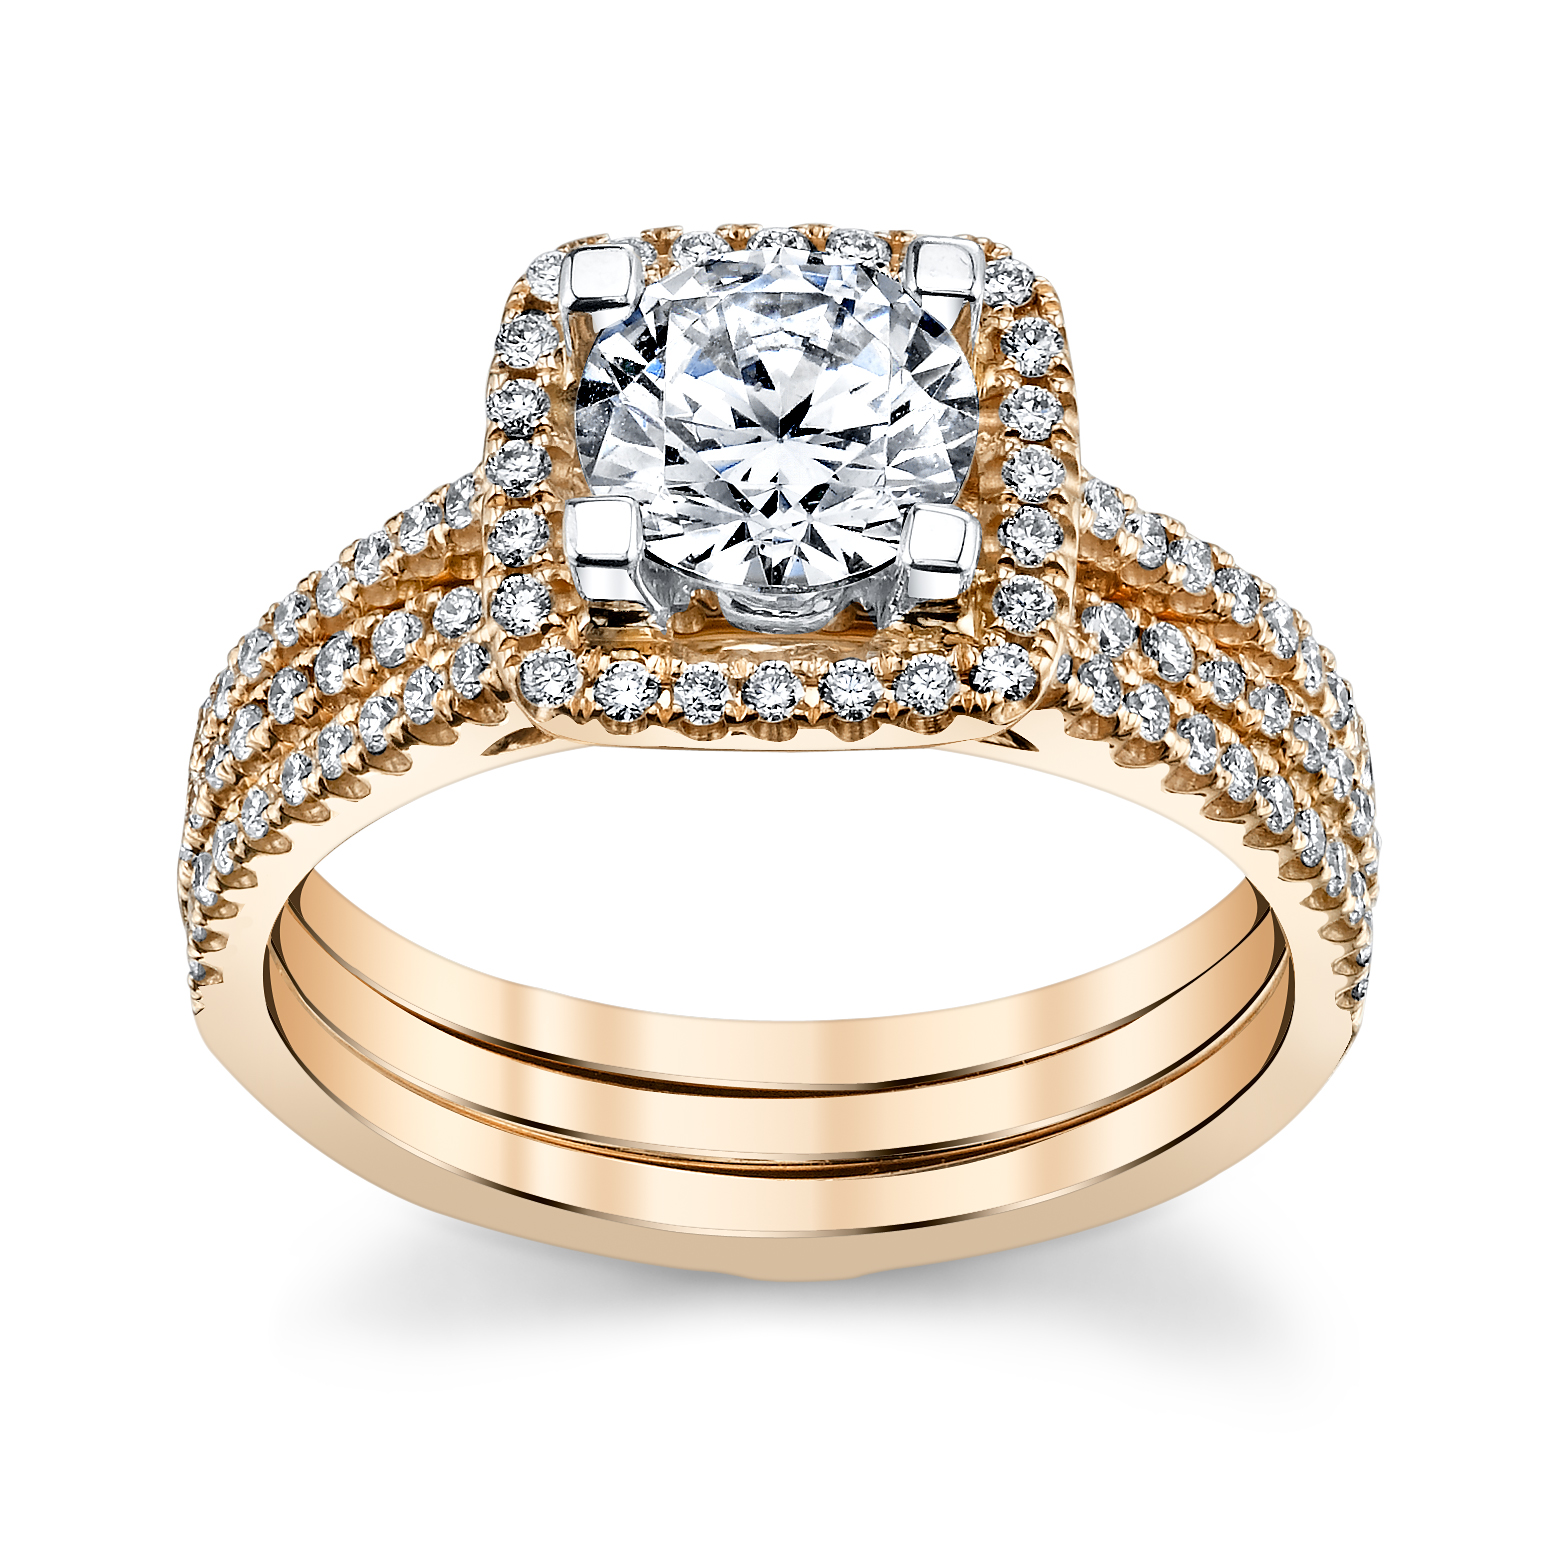 Robbins Brothers Engagement Rings: 5 Rose Gold Engagement Rings She'll Love